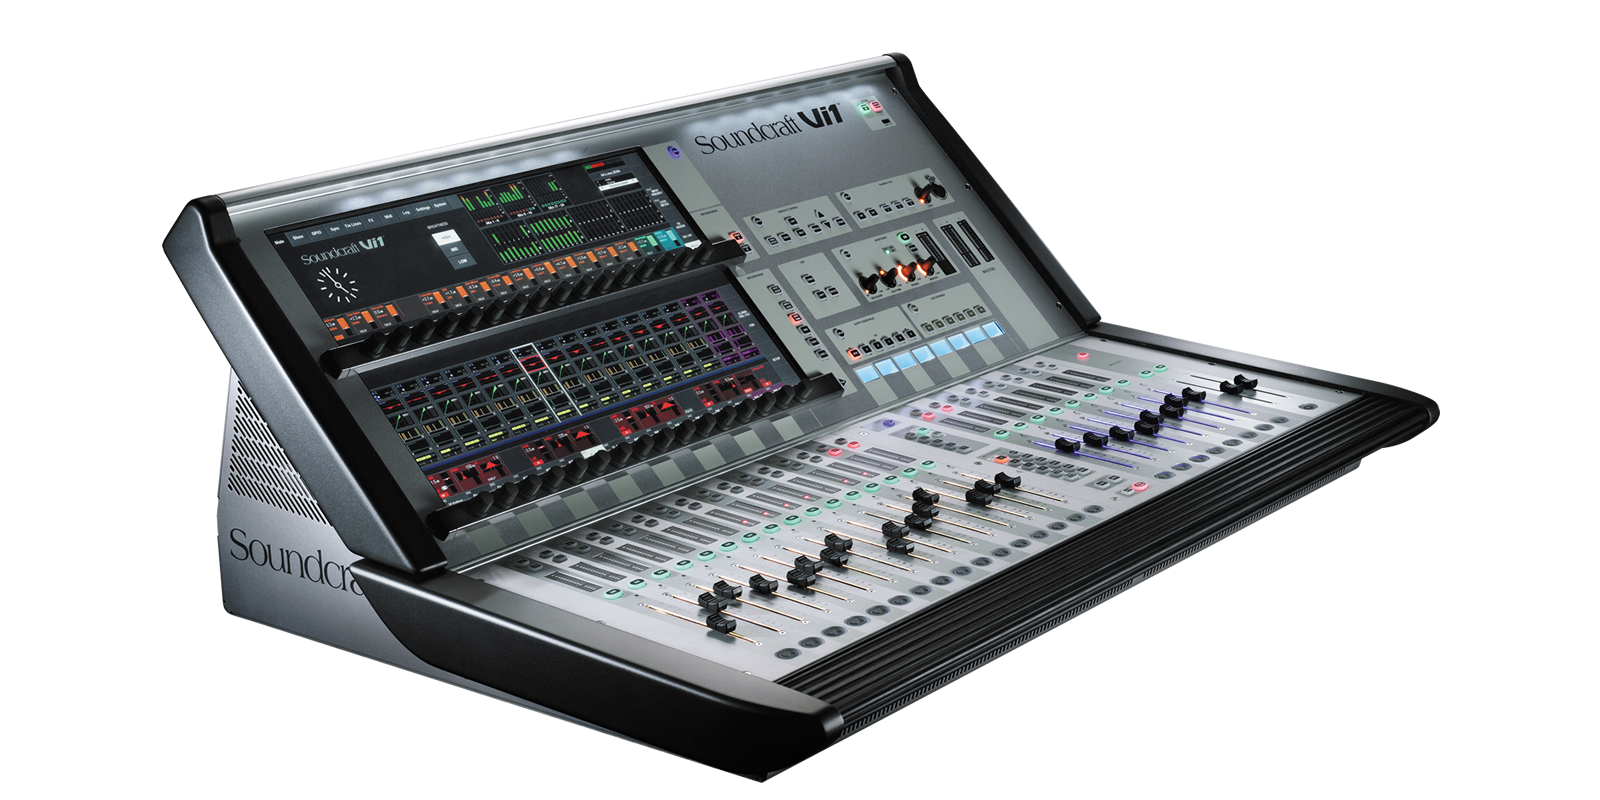 vi1 soundcraft professional audio mixers. Black Bedroom Furniture Sets. Home Design Ideas